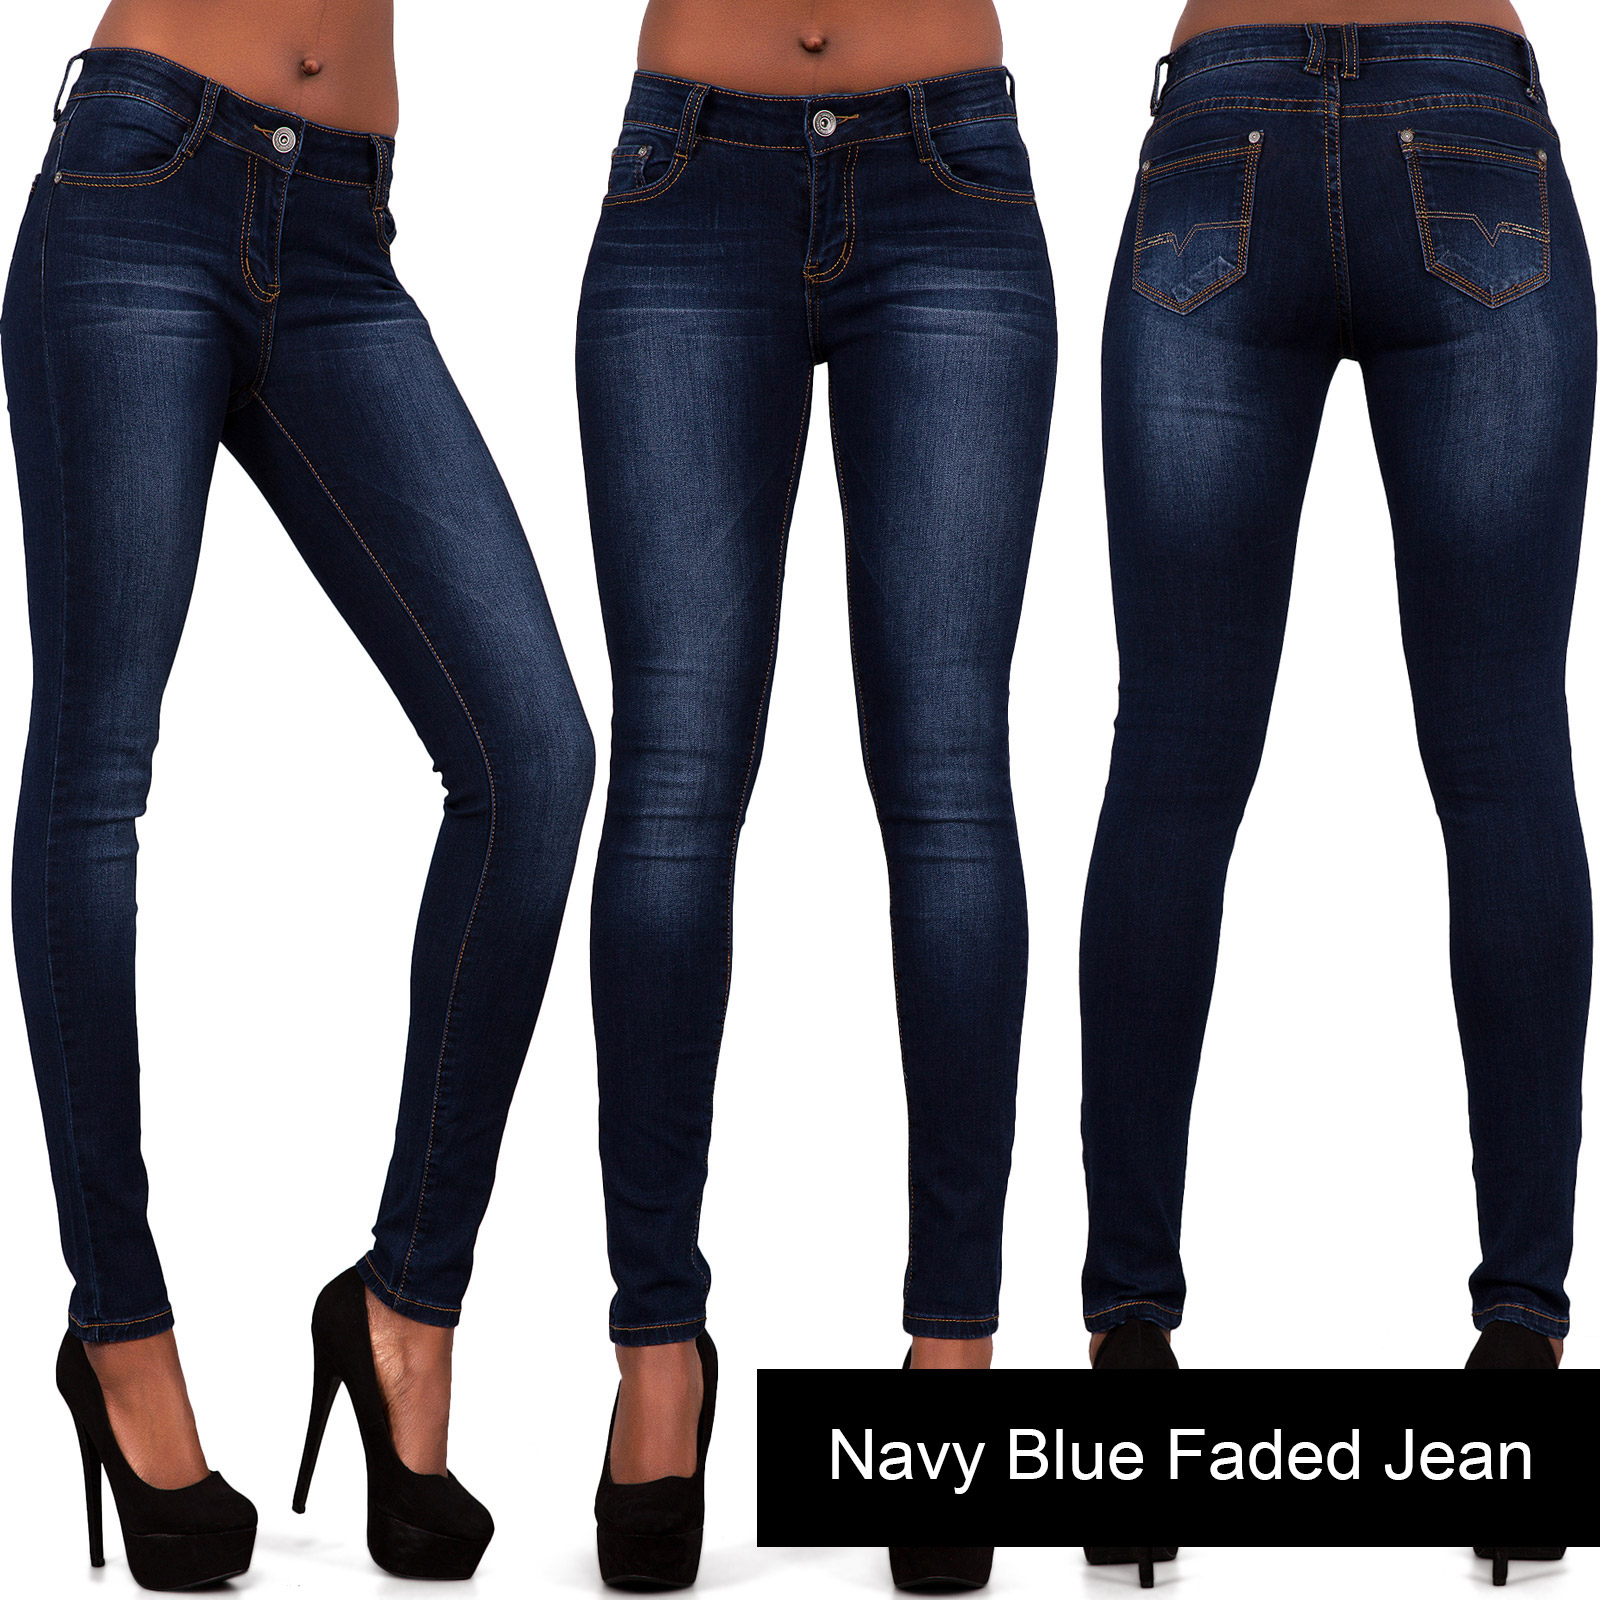 Size guide Fit & Sizing Sits low on waist. Regular inseam: 29